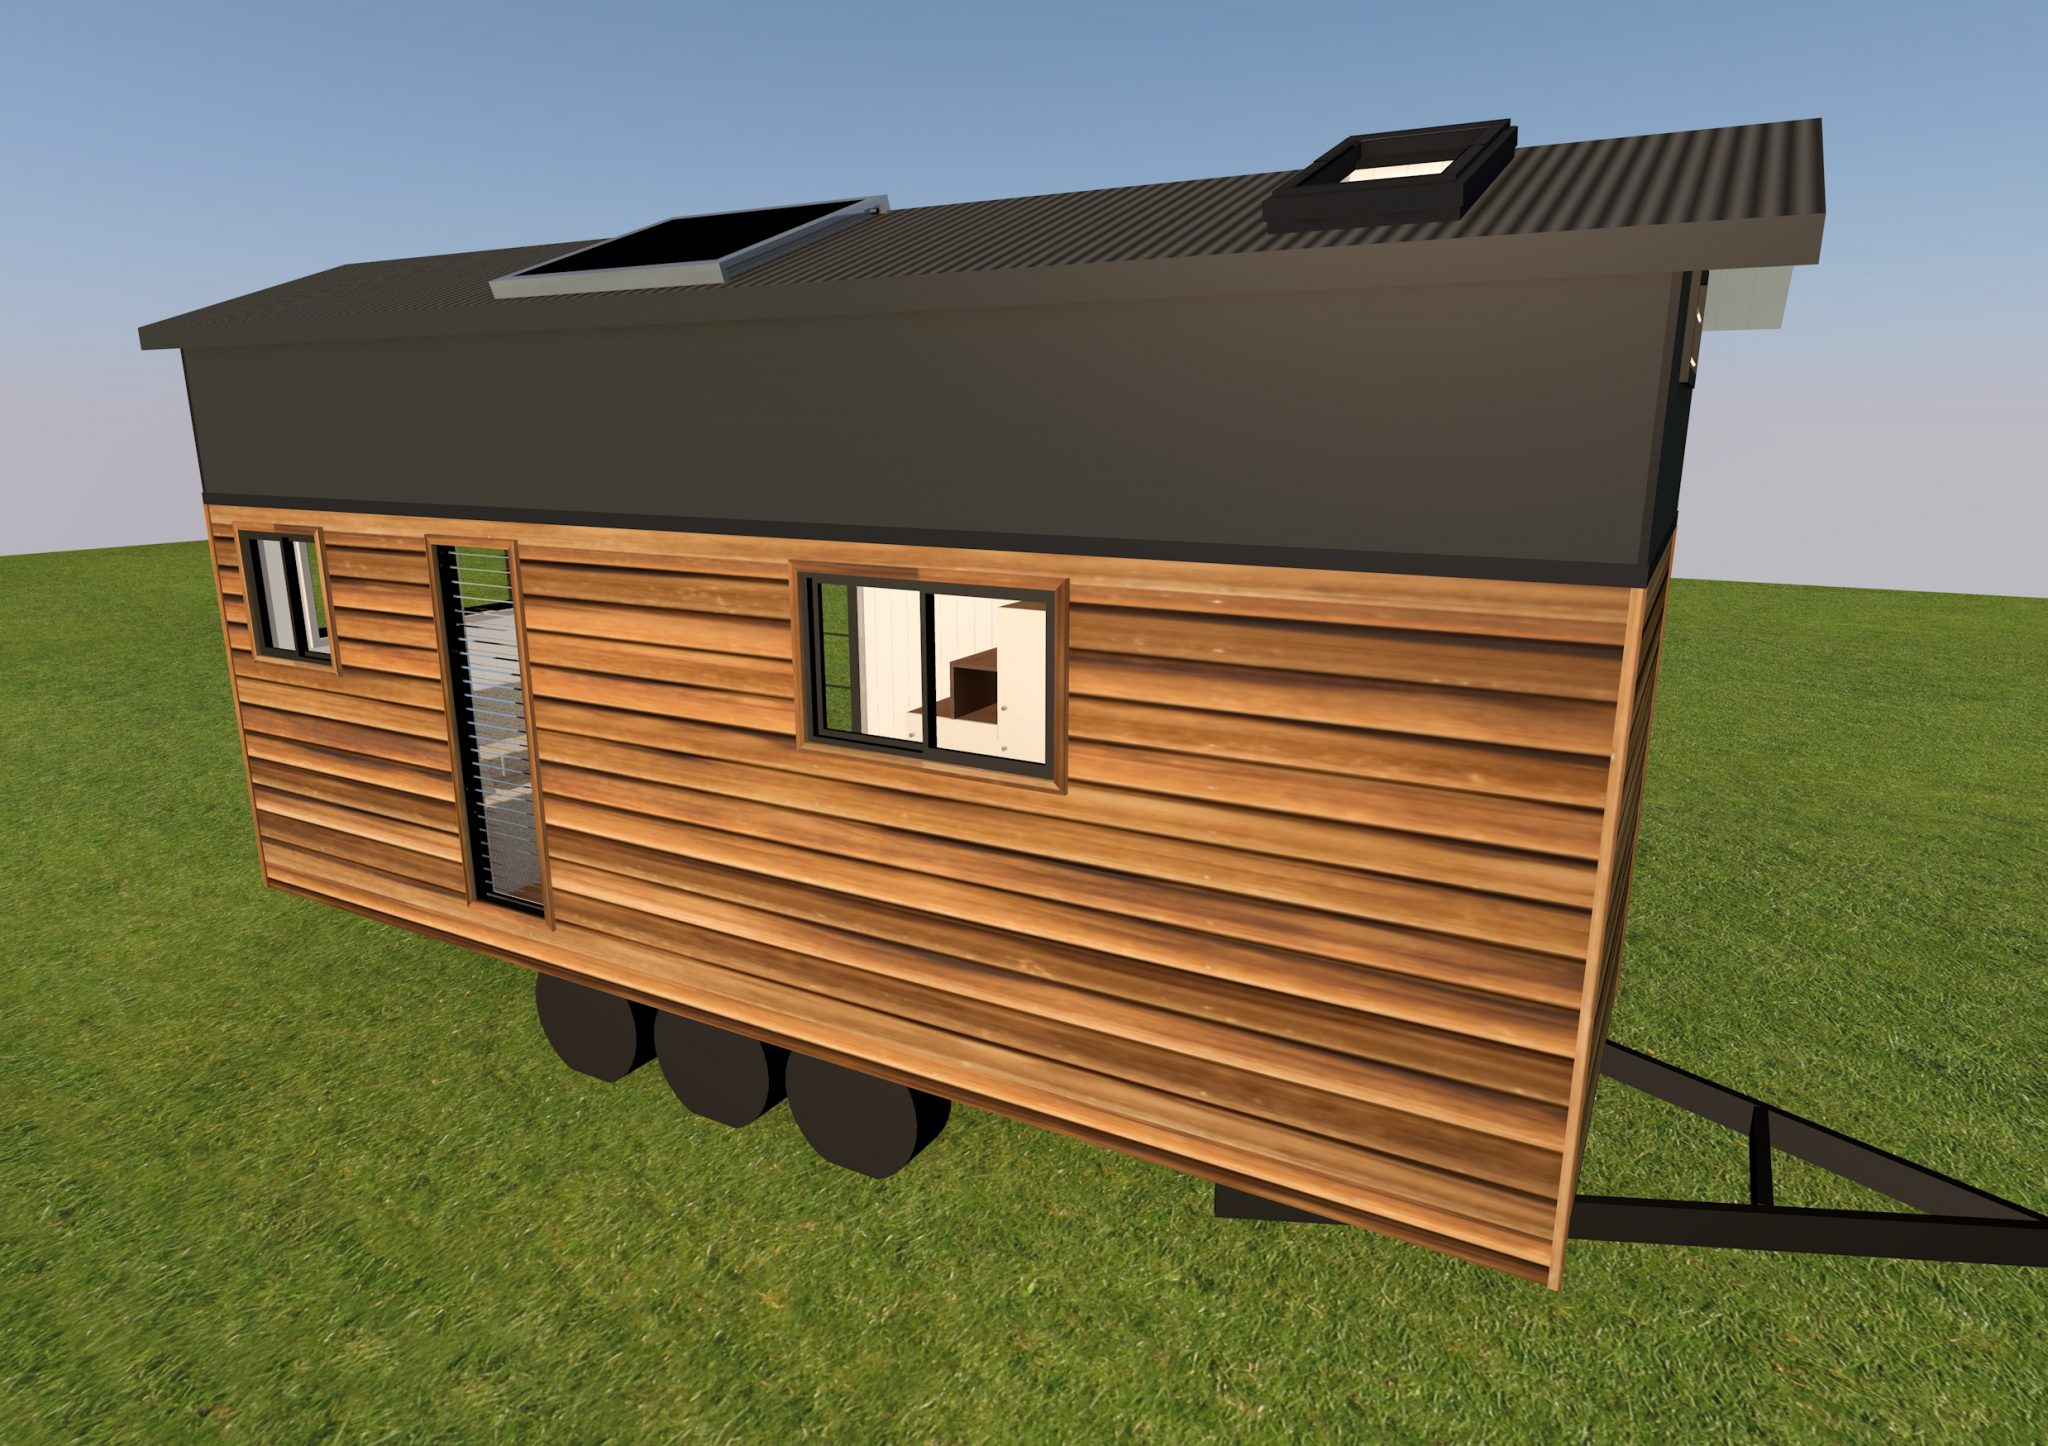 Lifestyle Series 7200DL Base Model exterior view